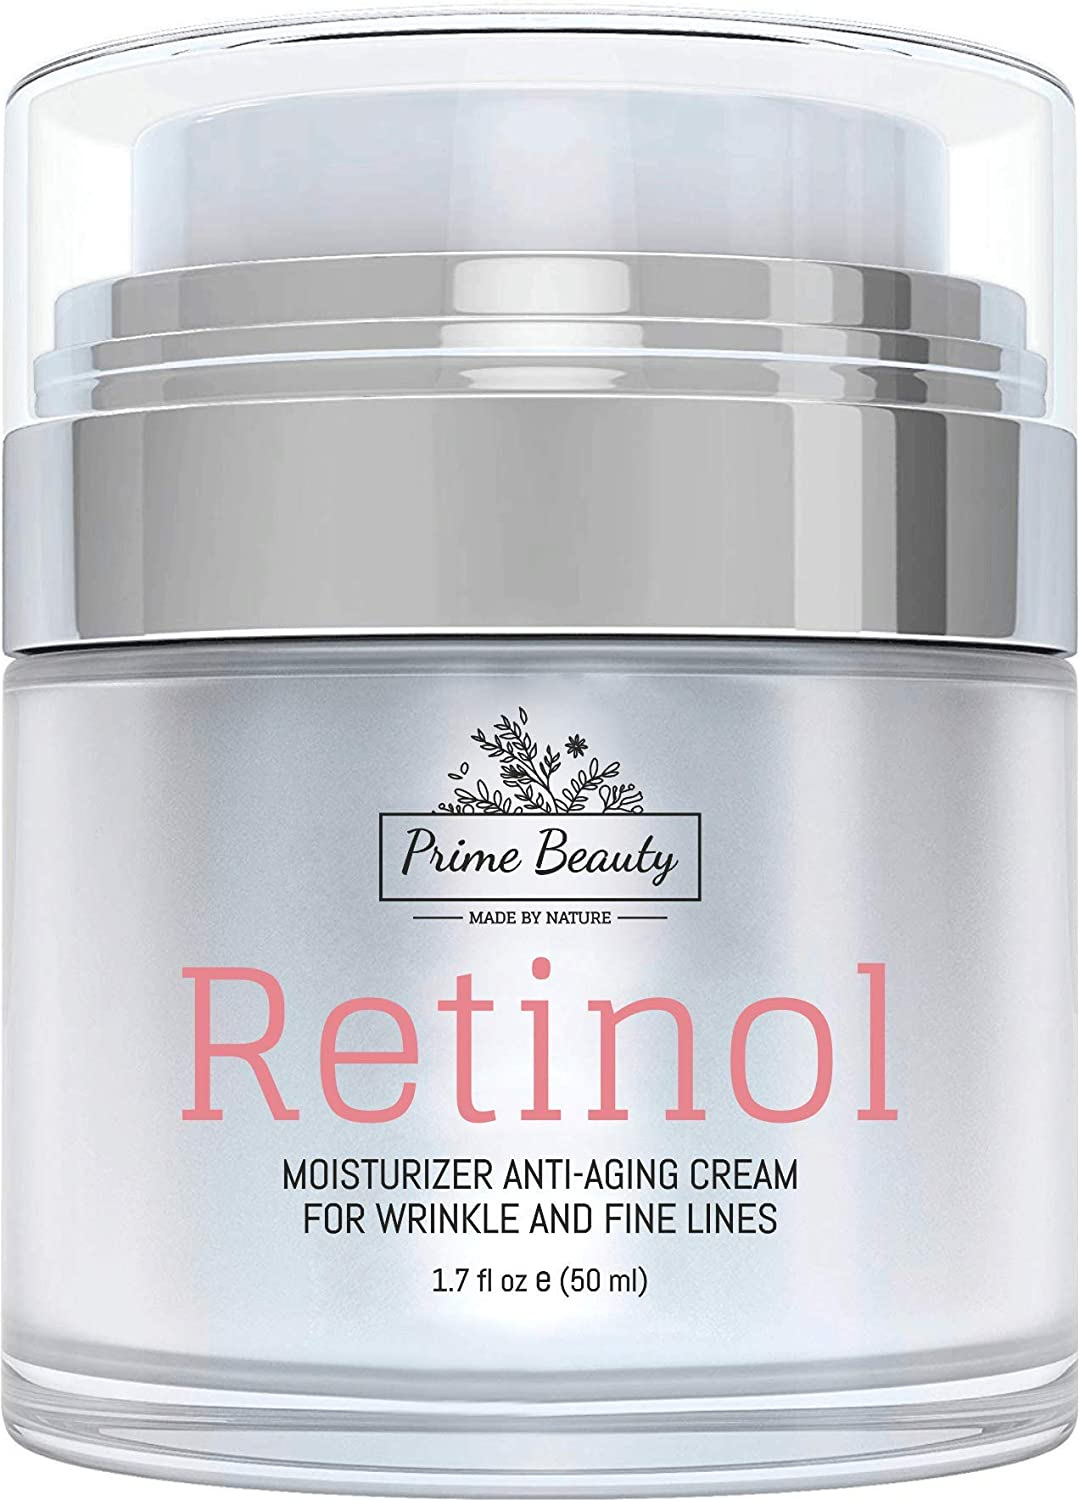 Prime Beauty Retinol Moisturizer Cream for Face and Eye Area – With Hyaluronic Acid, Jojoba Oil, Vitamin E, Retinol – Anti Aging, Anti Wrinkle, Fine Lines – Organic Skin Care – Day and Night Cream 1.7